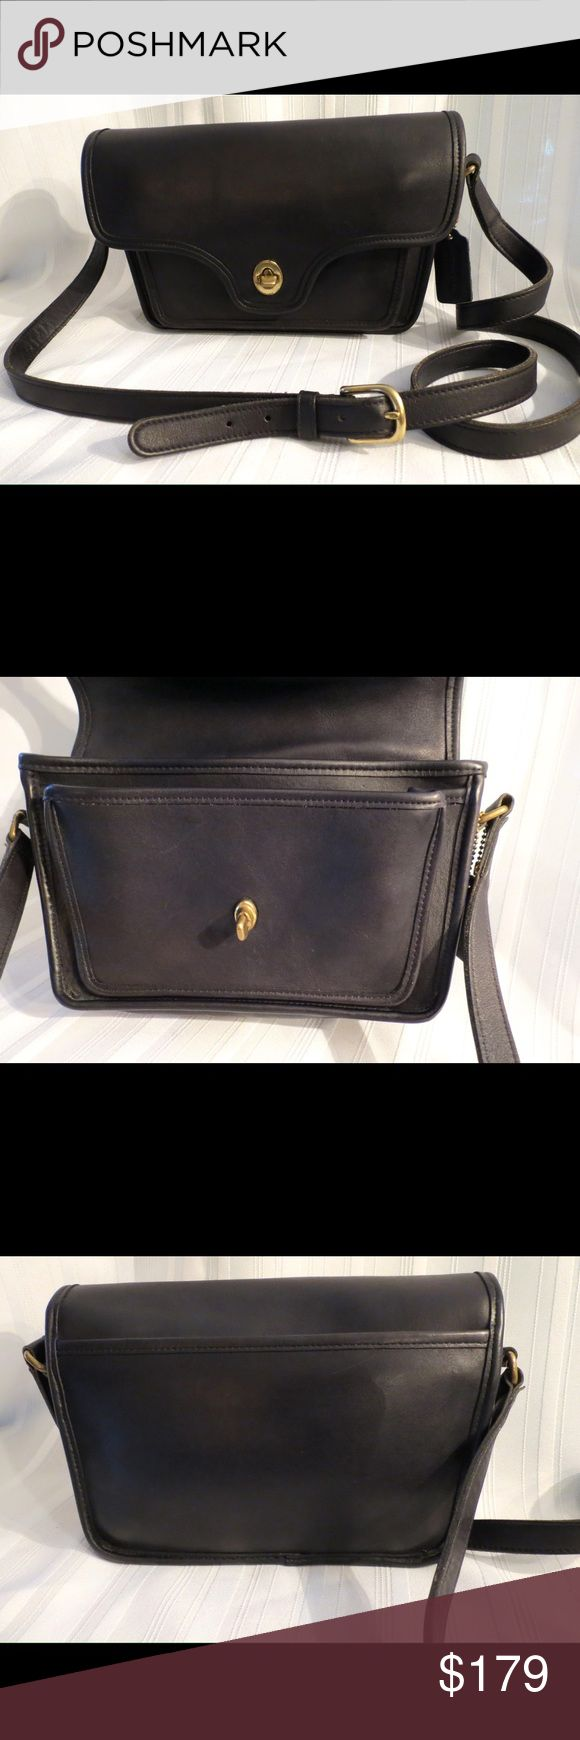 """COACH Vintage Kent Messenger Crossbody BAG USA Leather 9916 Made In USA Black Cross Body Bag  Excellent Gently Used Condition The leather and bag is pretty much perfect the grass kiss lock shows wear, you can actually get one free from Coach if you like a new one all you pay is shipping. All of my items are absolutely positively guaranteed 100% genuine, I do not sell FAKE anything!  9916     Height: 6""""  Width: 10""""  Depth: 3""""  Strap Drop: 20""""  a bit more as it is adjustable  No Trades (S080)…"""